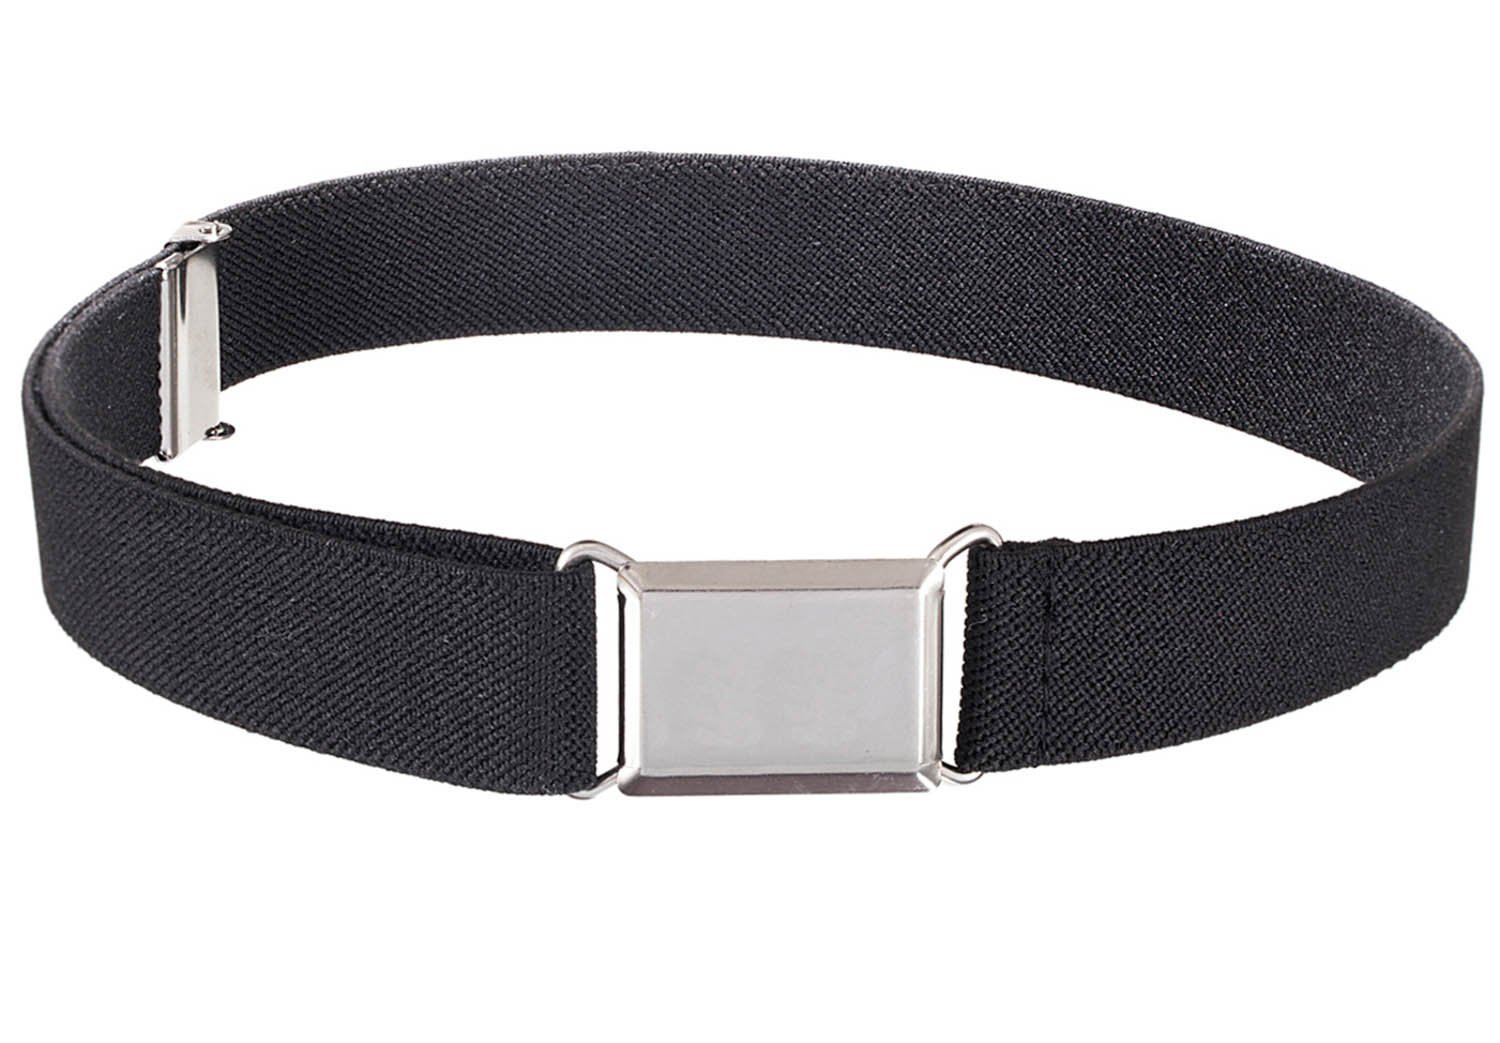 Kids Elastic Adjustable Strech Belt With Silver Square Buckle - Black Hold'Em